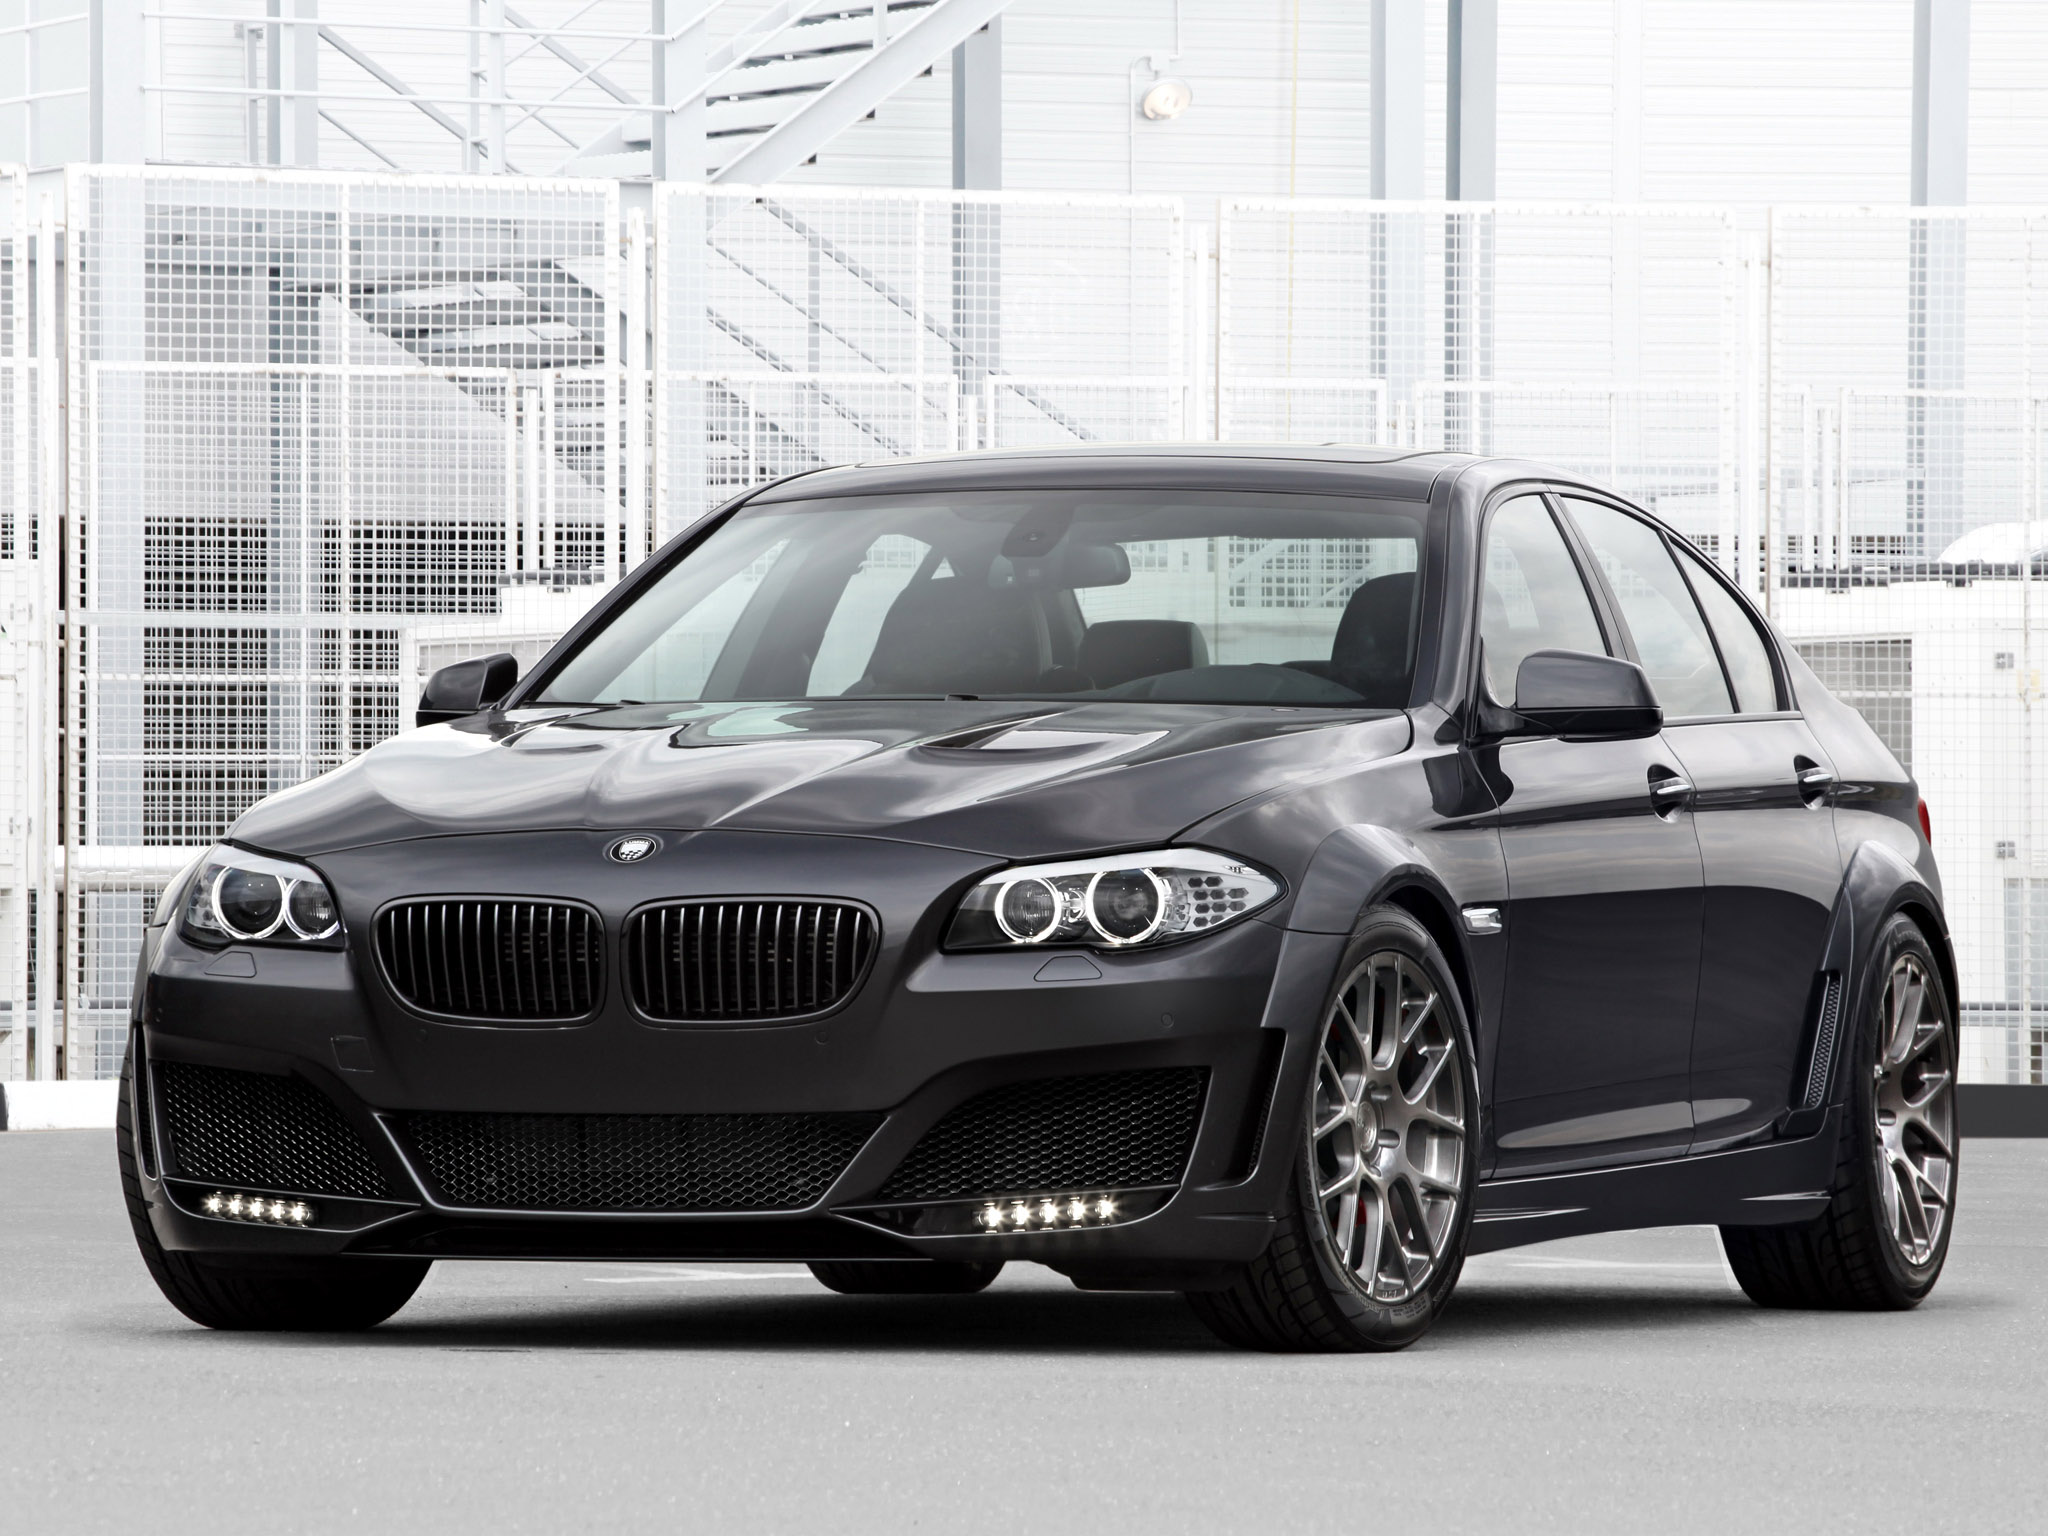 lumma design bmw 5 series f10 clr 500 rs2 2010 lumma design bmw 5 series f10 clr 500 rs2 2010. Black Bedroom Furniture Sets. Home Design Ideas